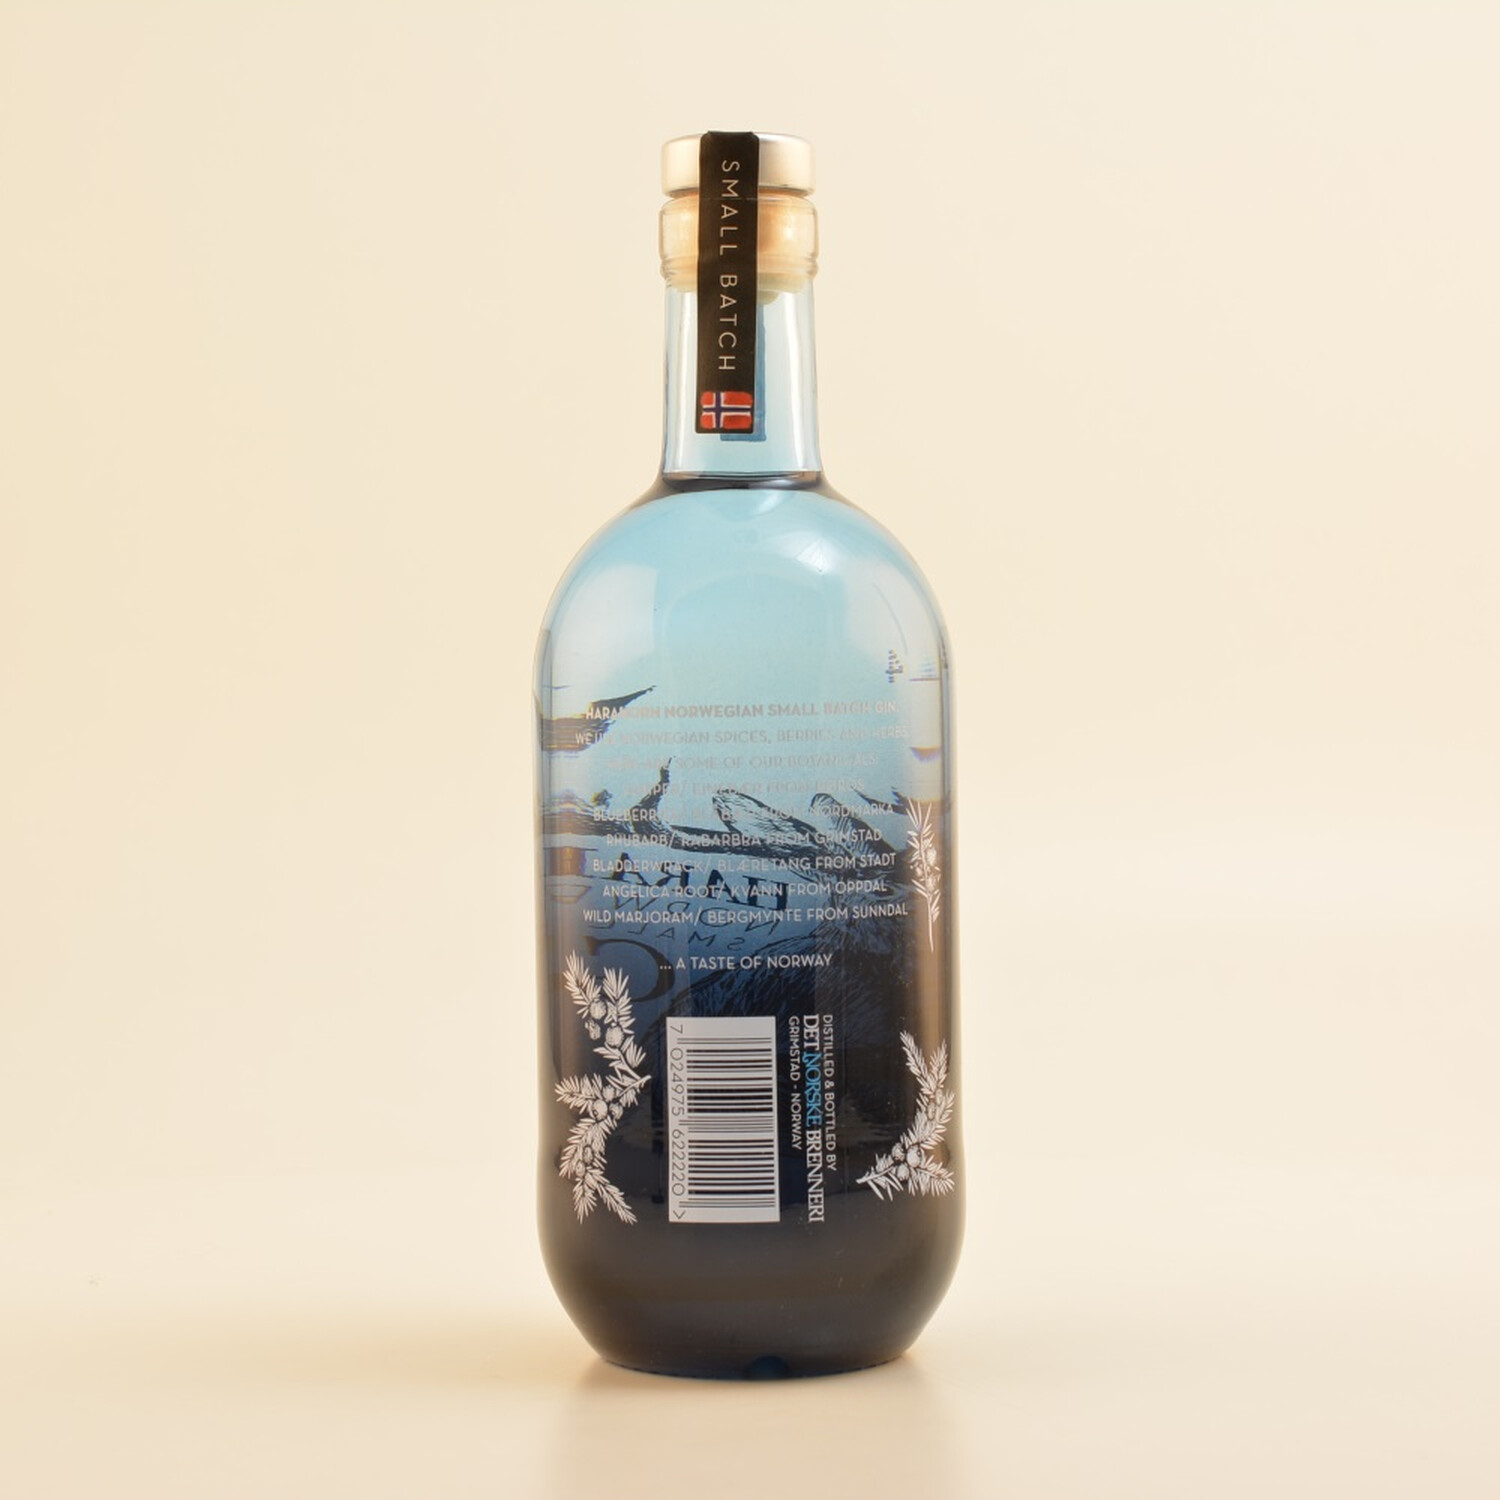 Harahorn Norwegian Small Batch Gin 46% 0,5l